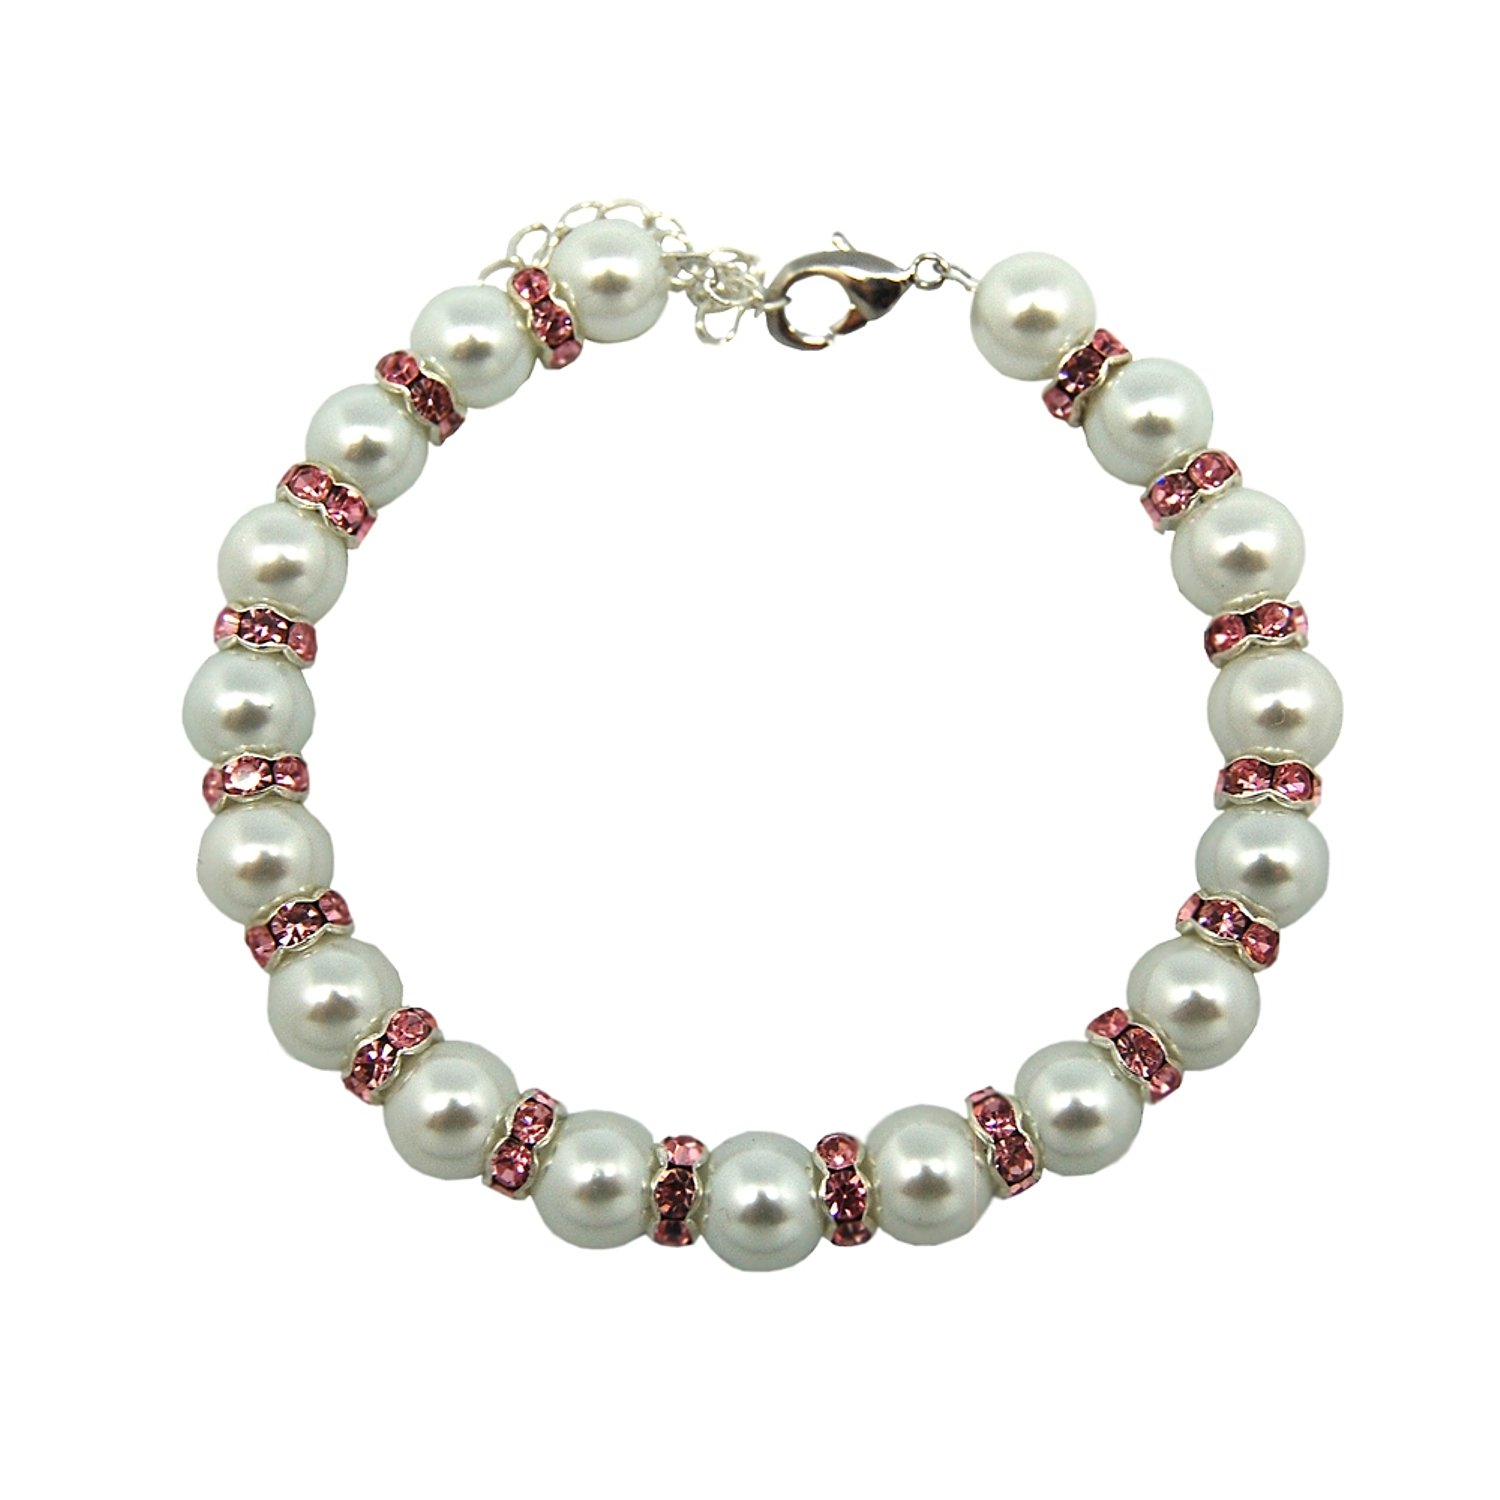 Anima White Glass Pearl with Pink Rhinestone Rings Pet Necklace, 8-10